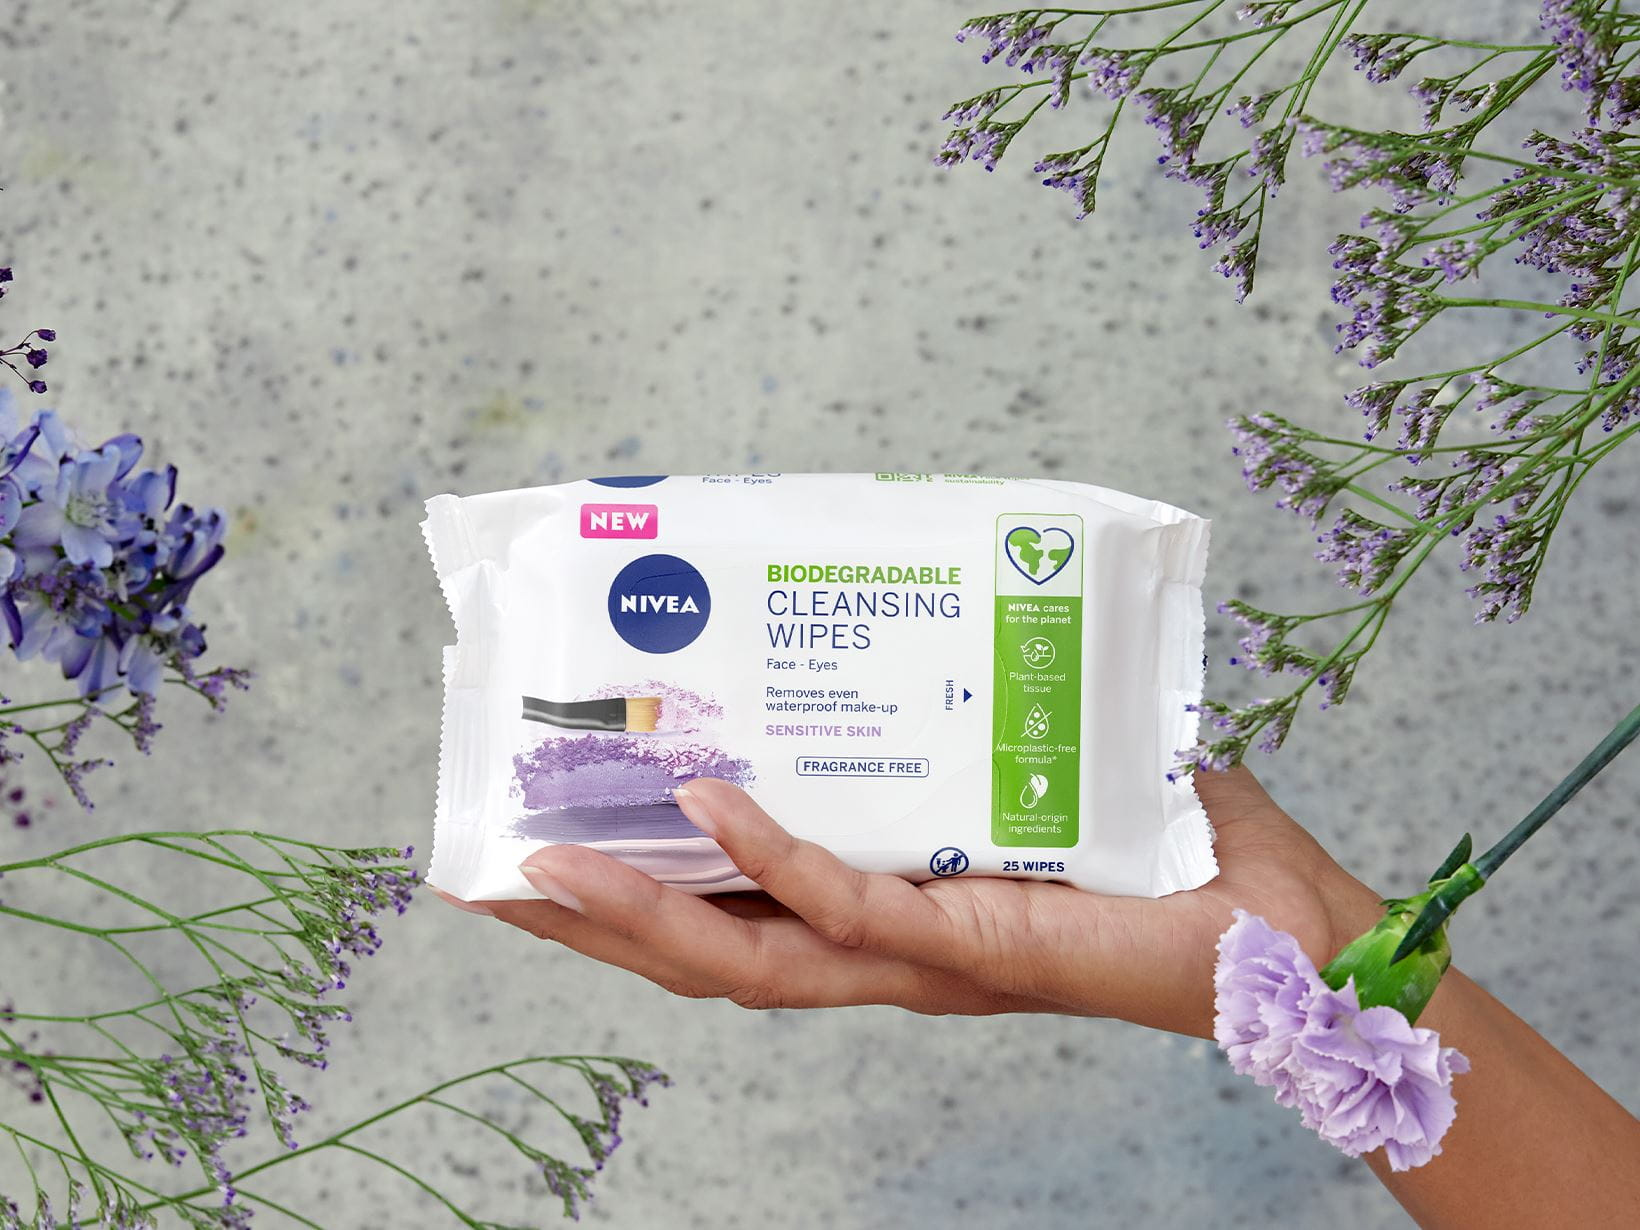 WHEN TO USE FACE WIPES?